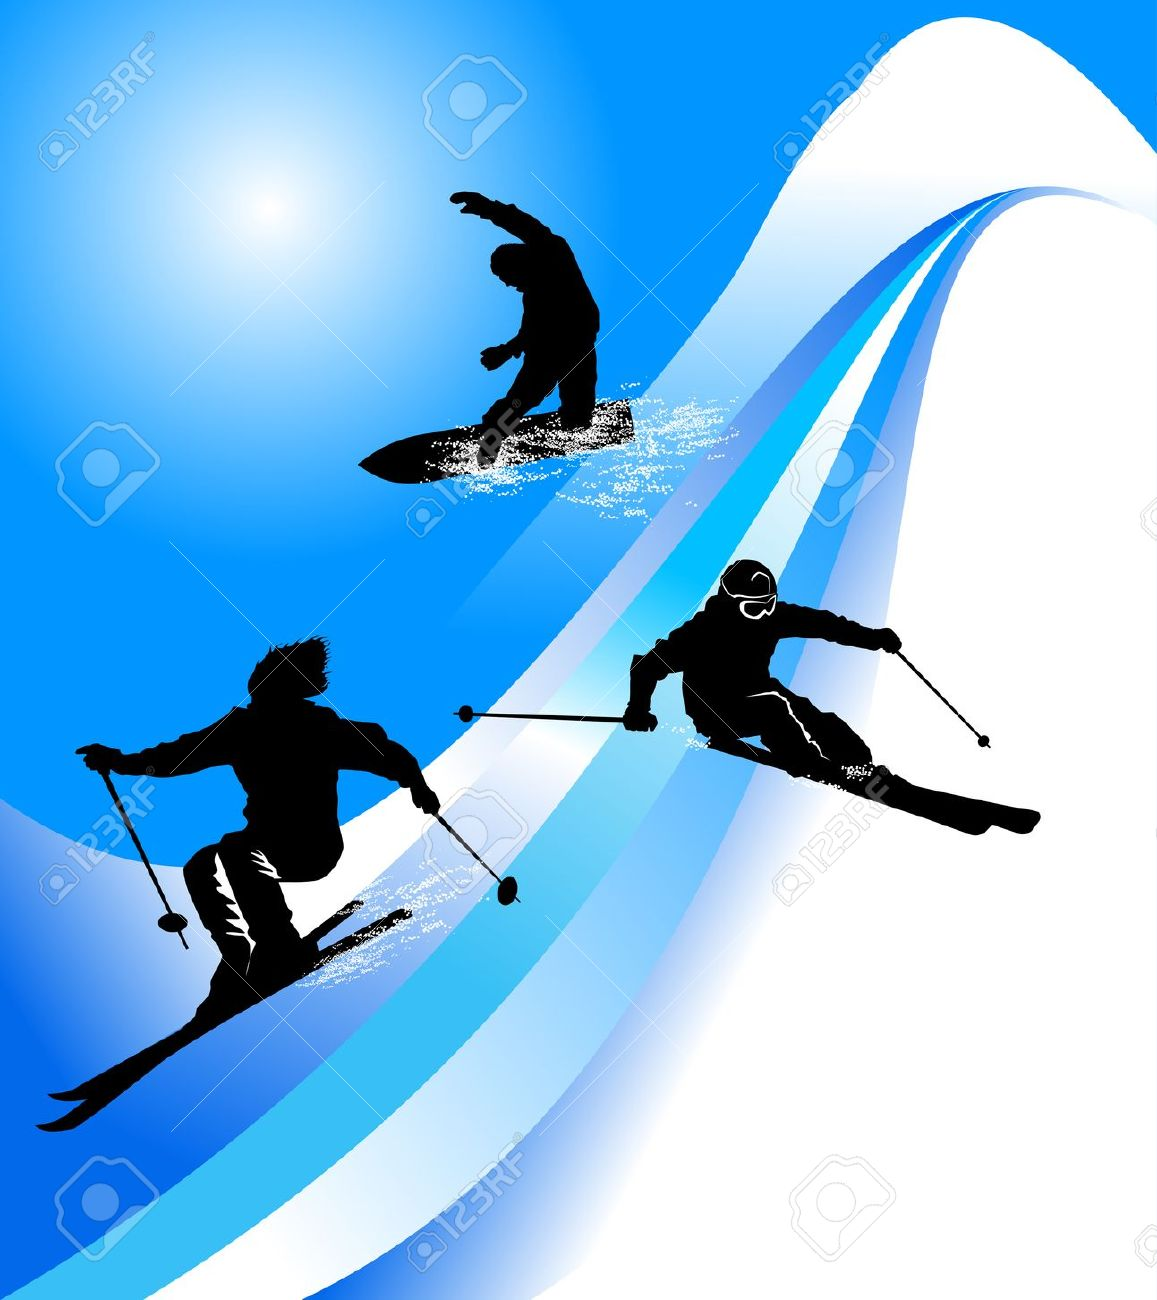 Mountain skiing clipart.